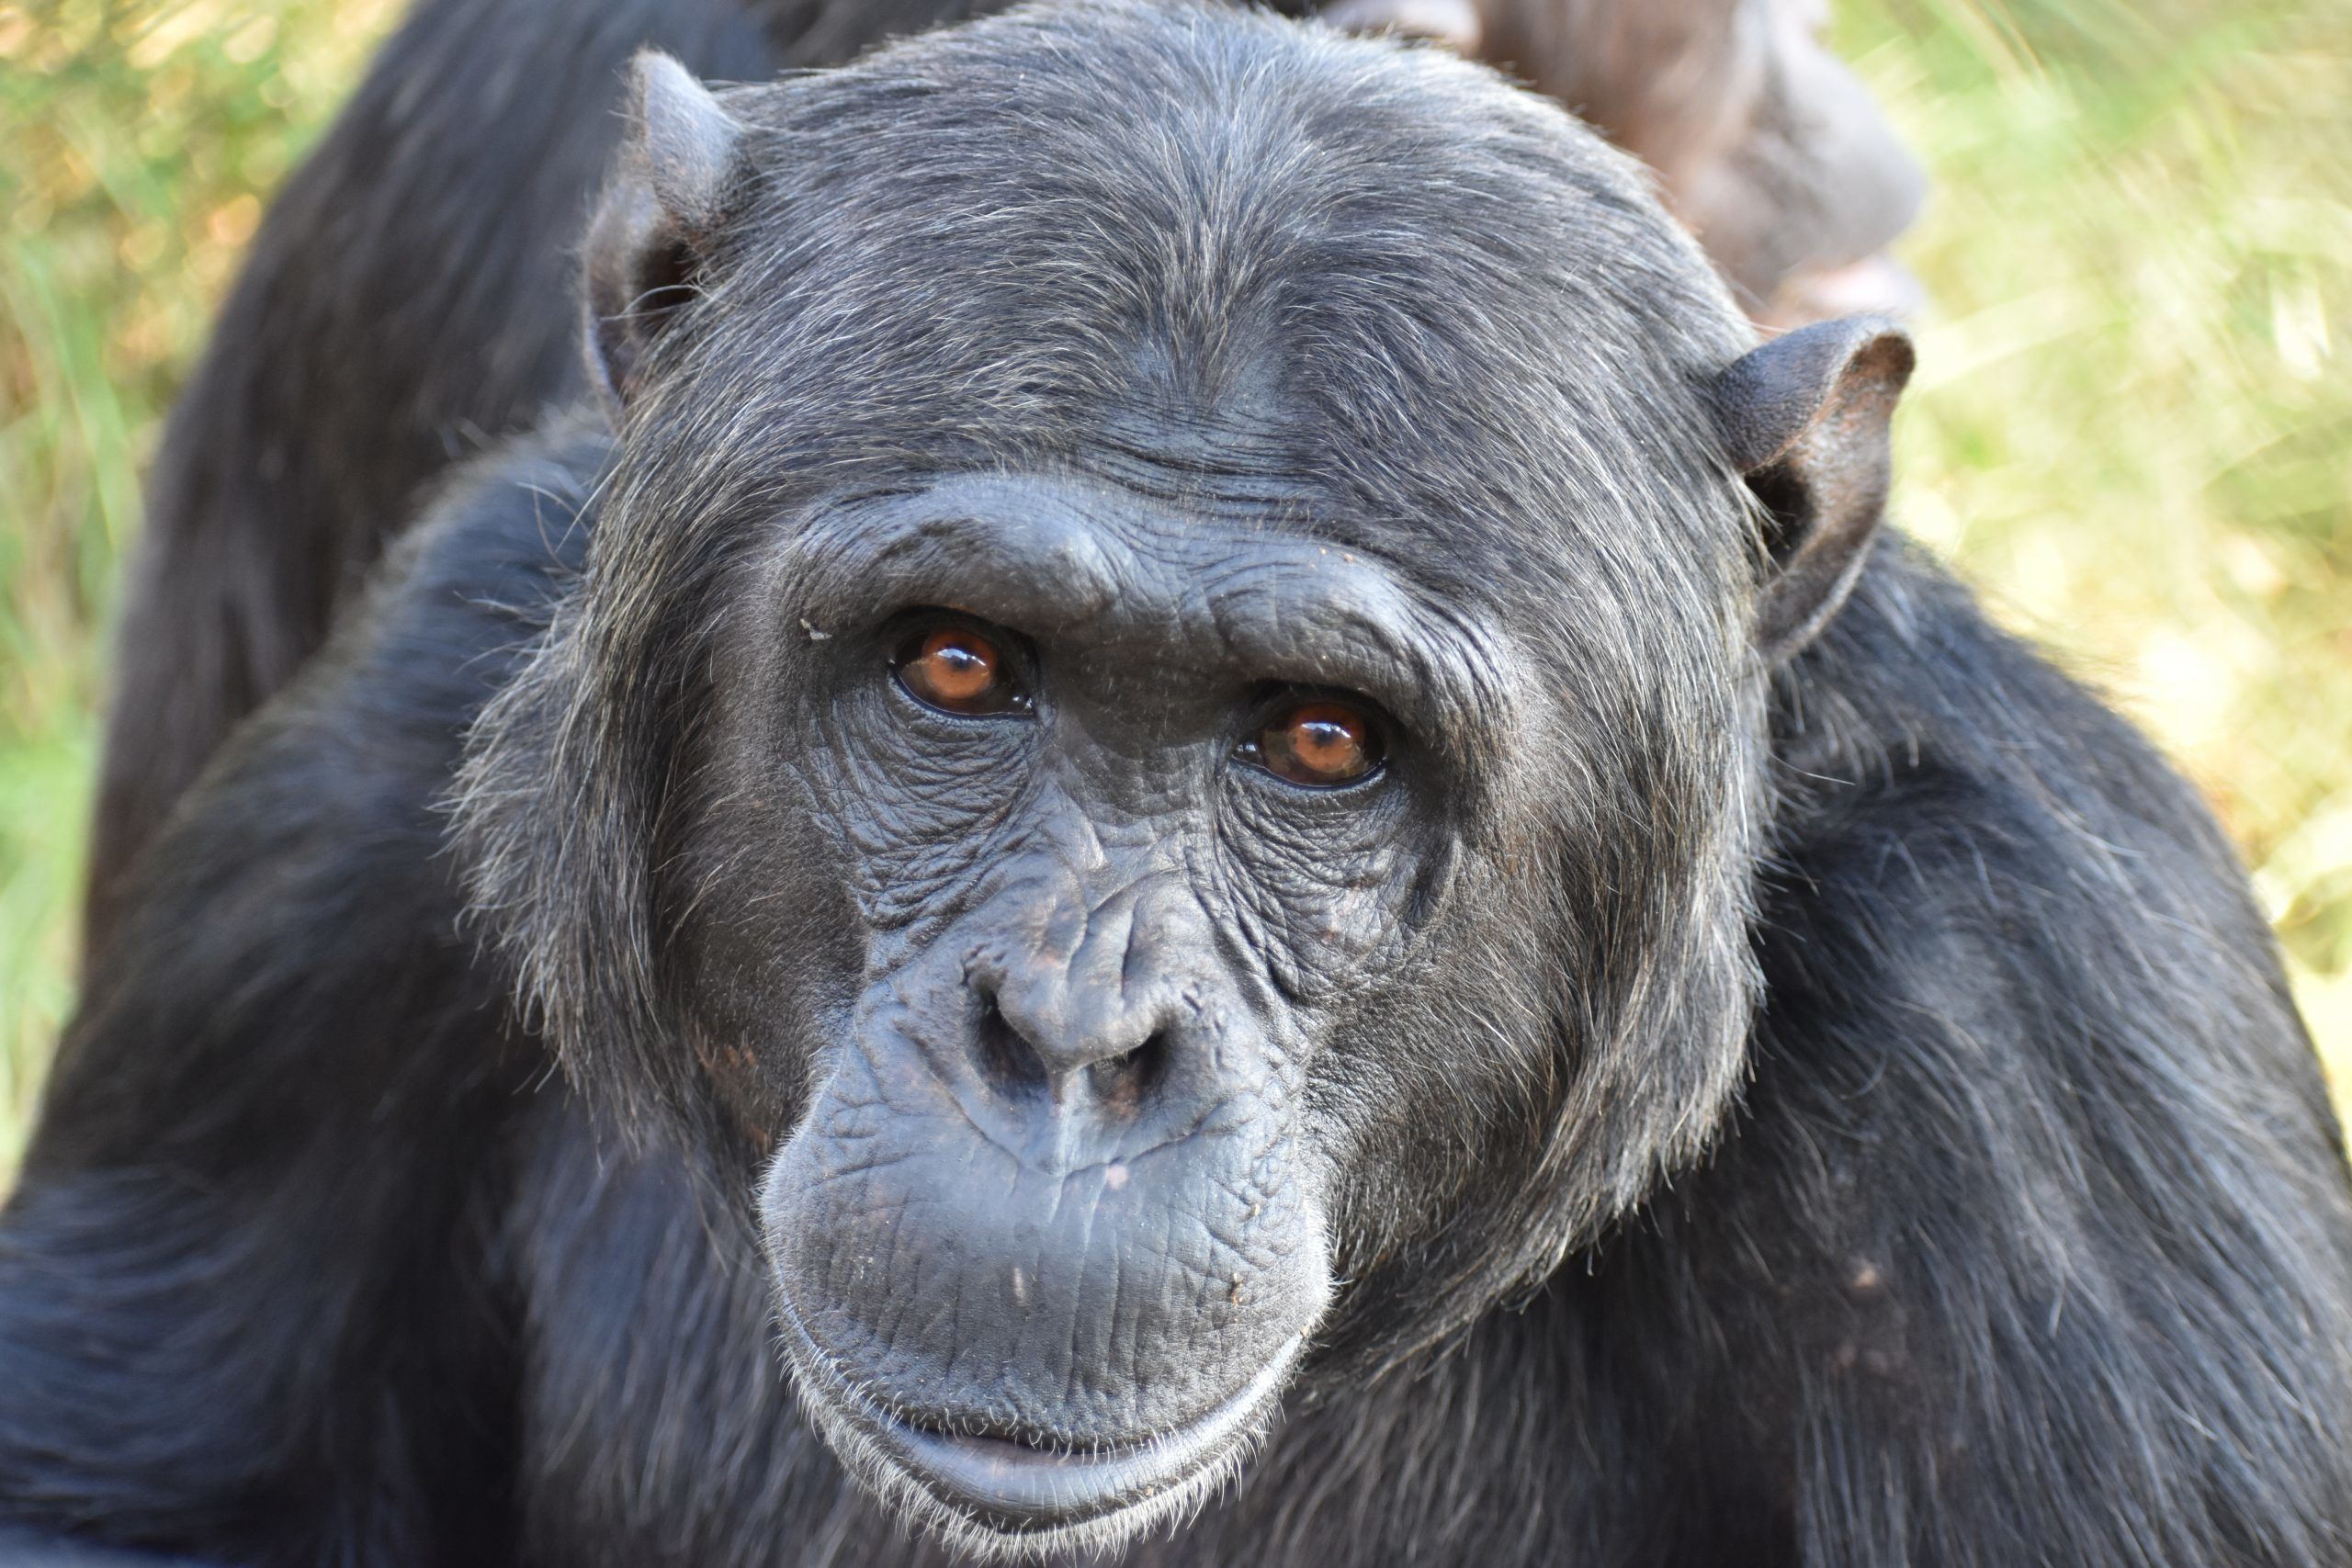 Chimpanzee at sanctuary in South Africa